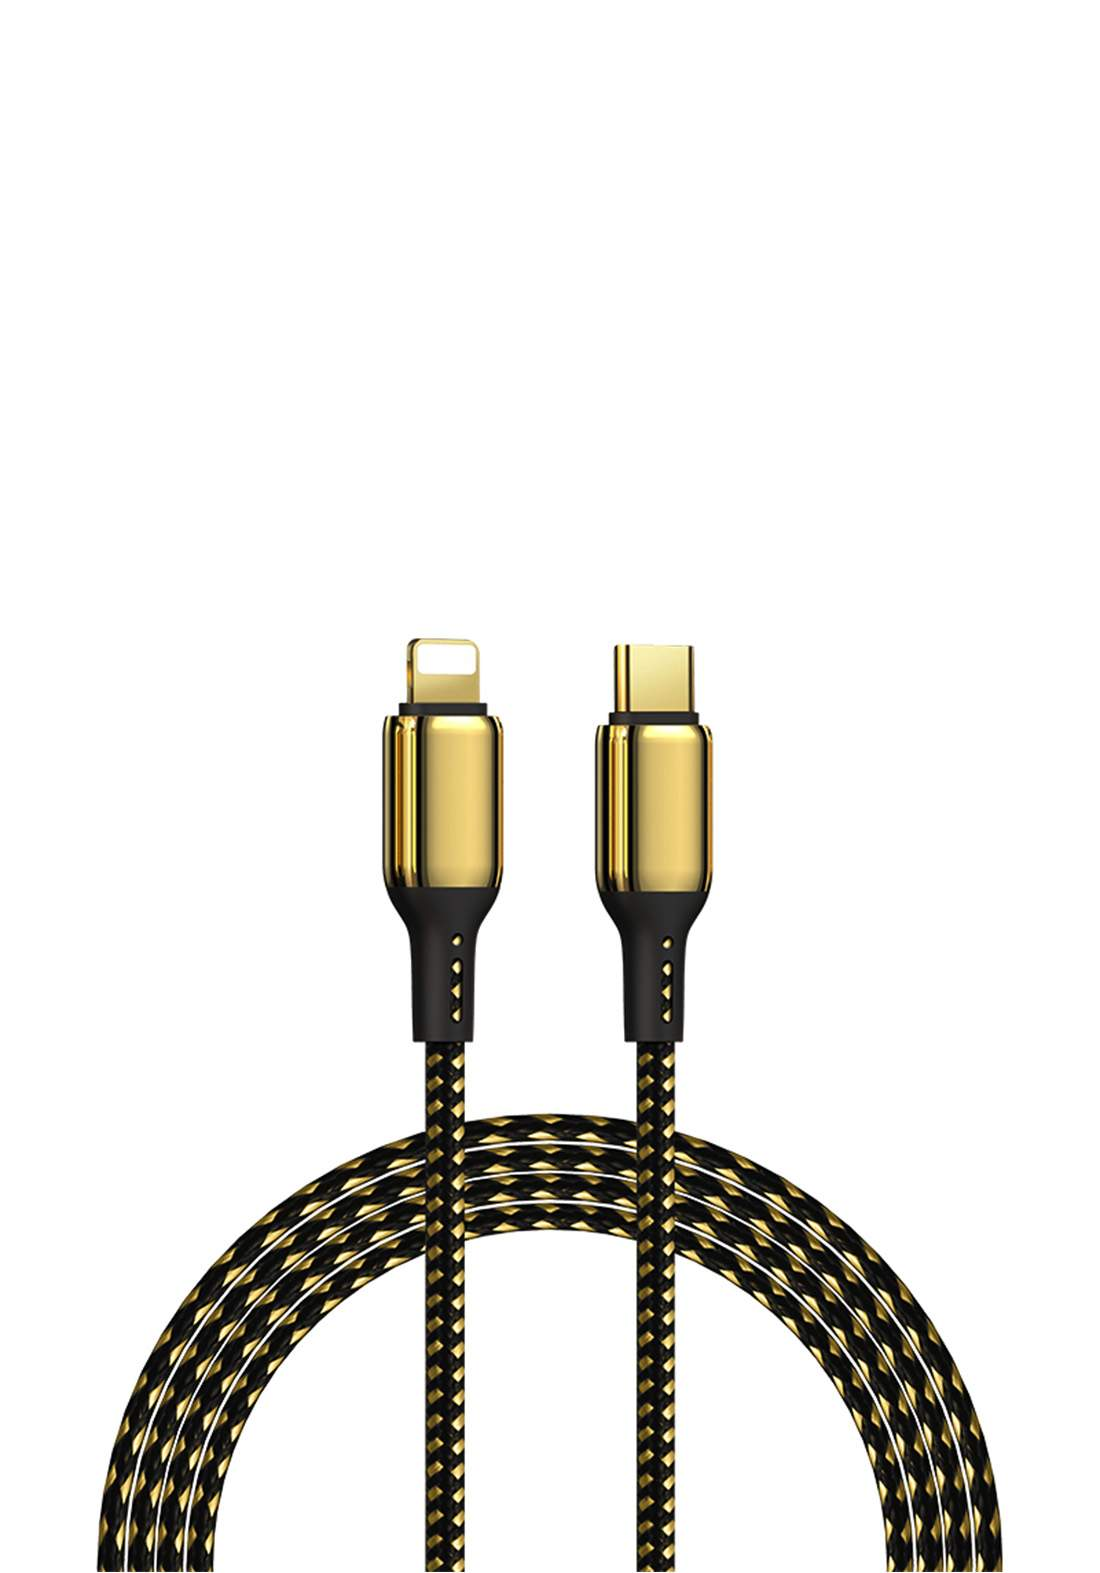 WIWU USB-A TO Lightning 1.2 m  to Lightning Gold Plated 20w Fast Charging Cable for iPhone - Gold  كابل